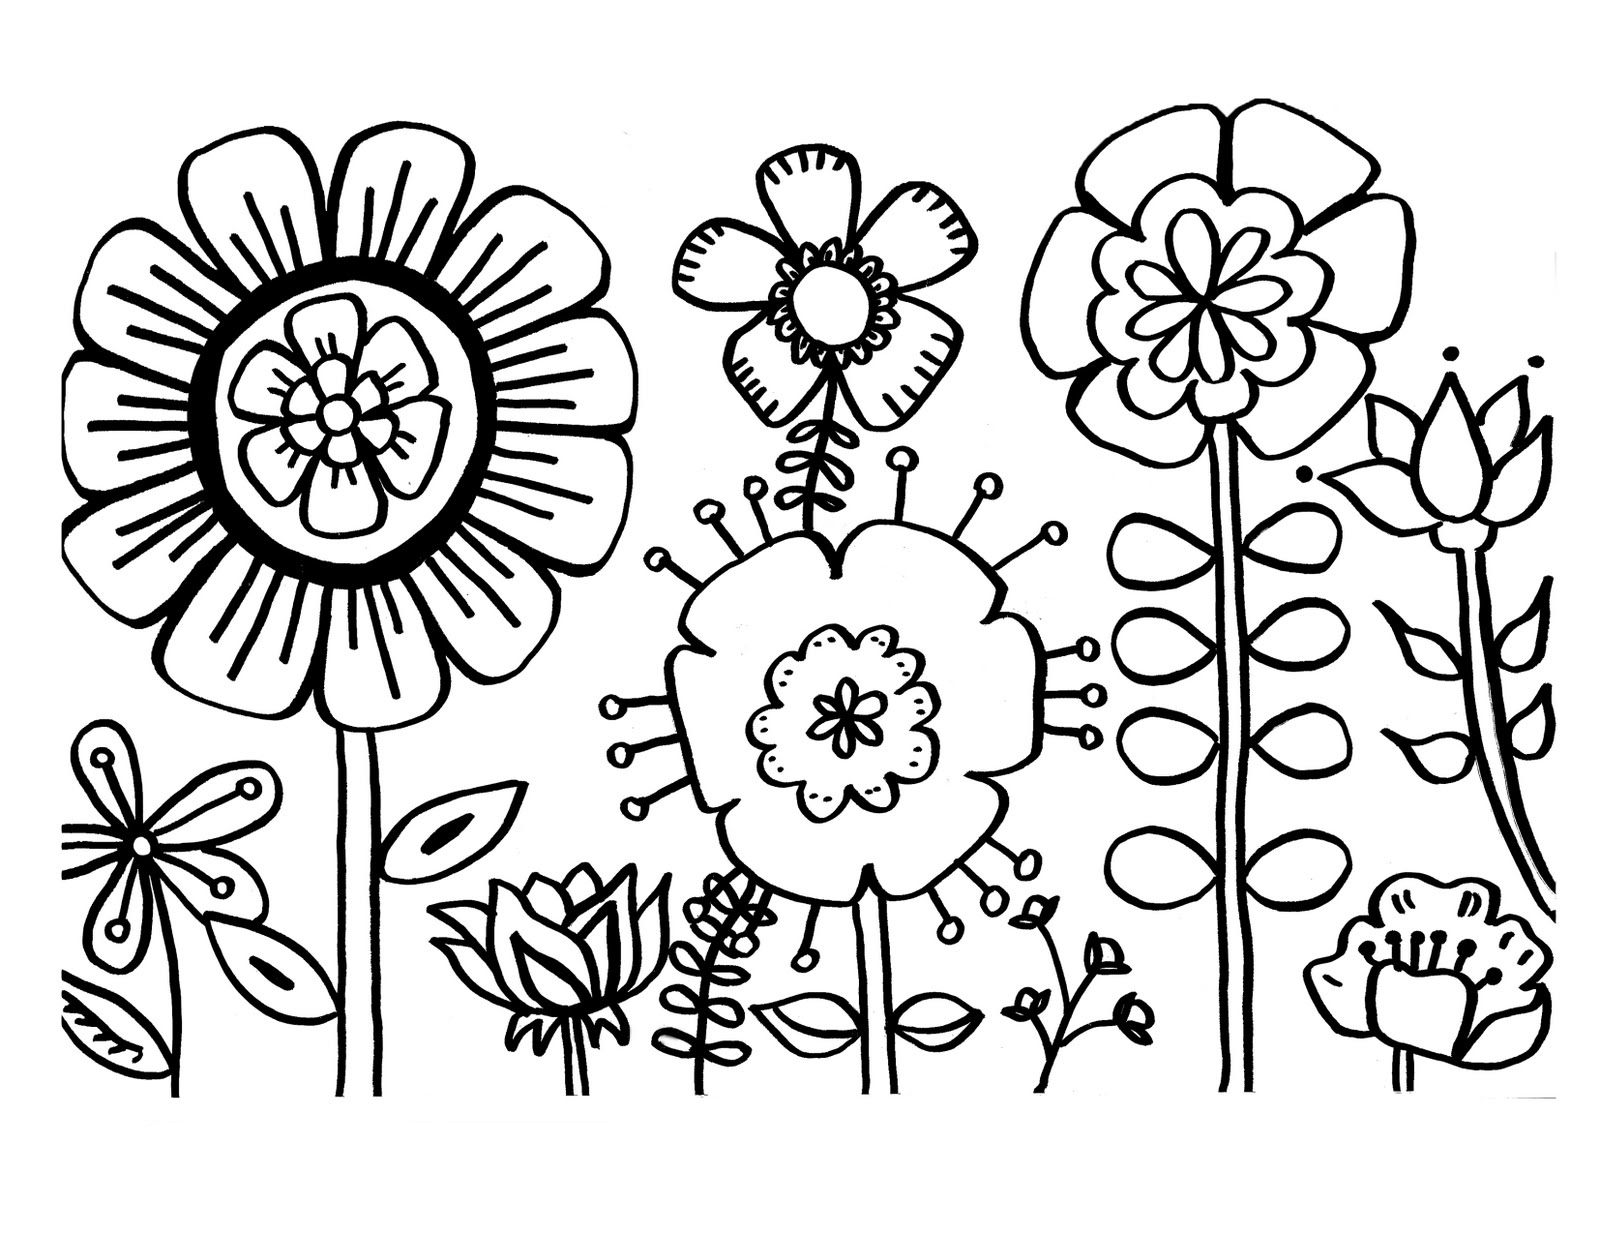 flower pictures coloring pages free printable hibiscus coloring pages for kids flower pictures coloring pages